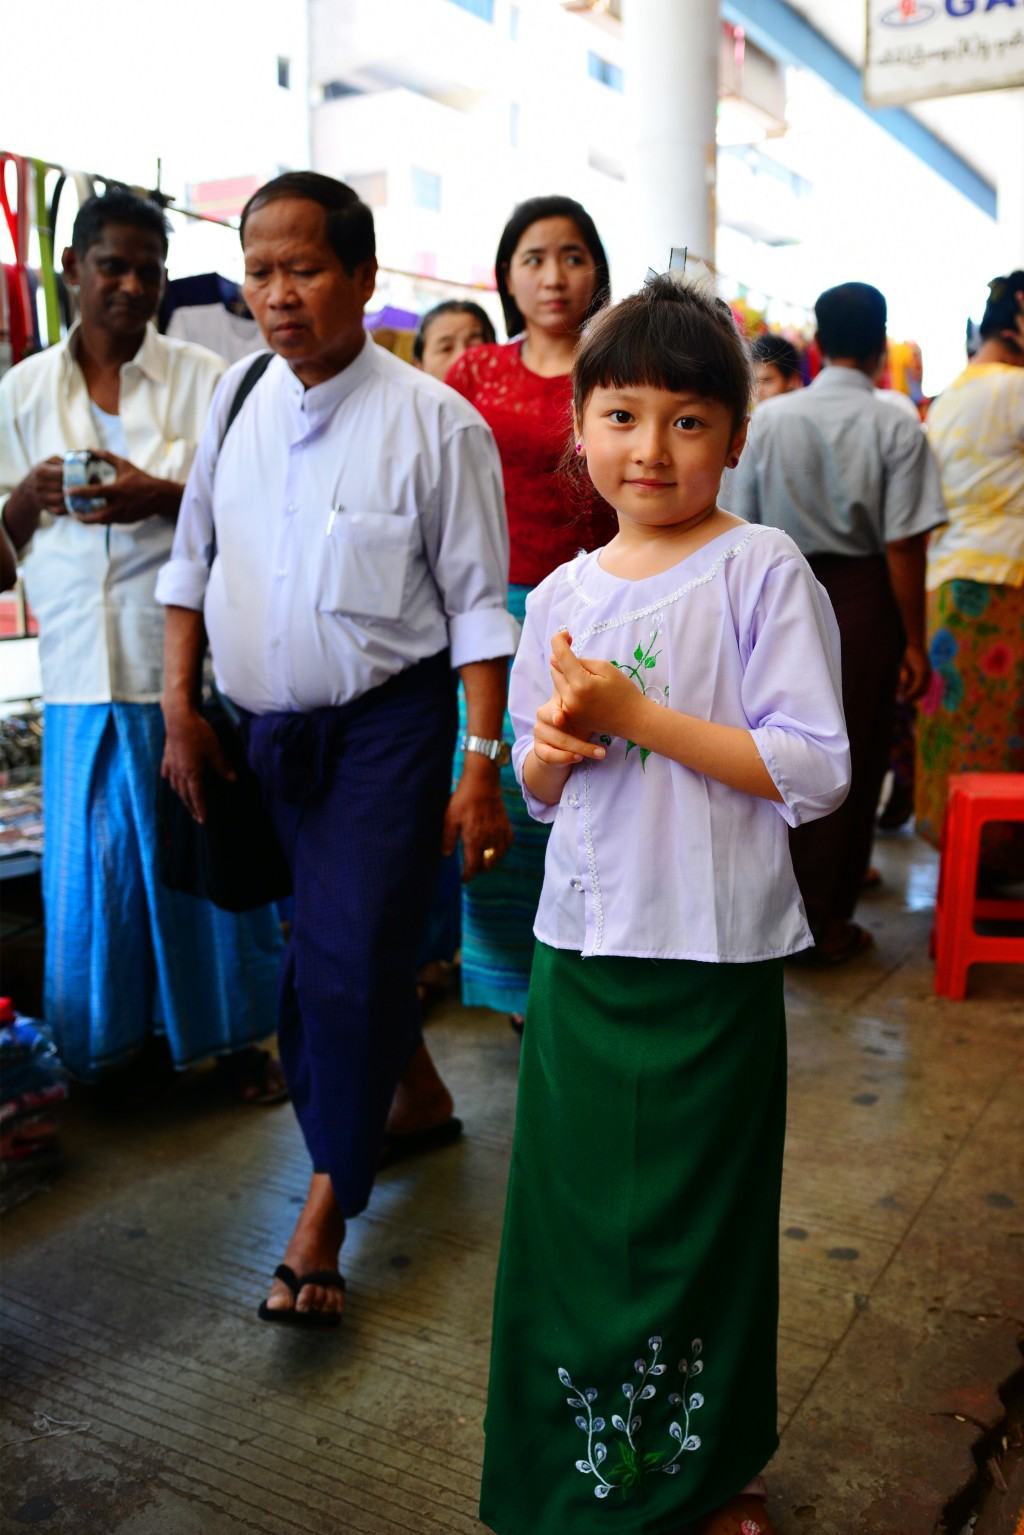 we found out later this is the Burmese standard schoolgirl uniform